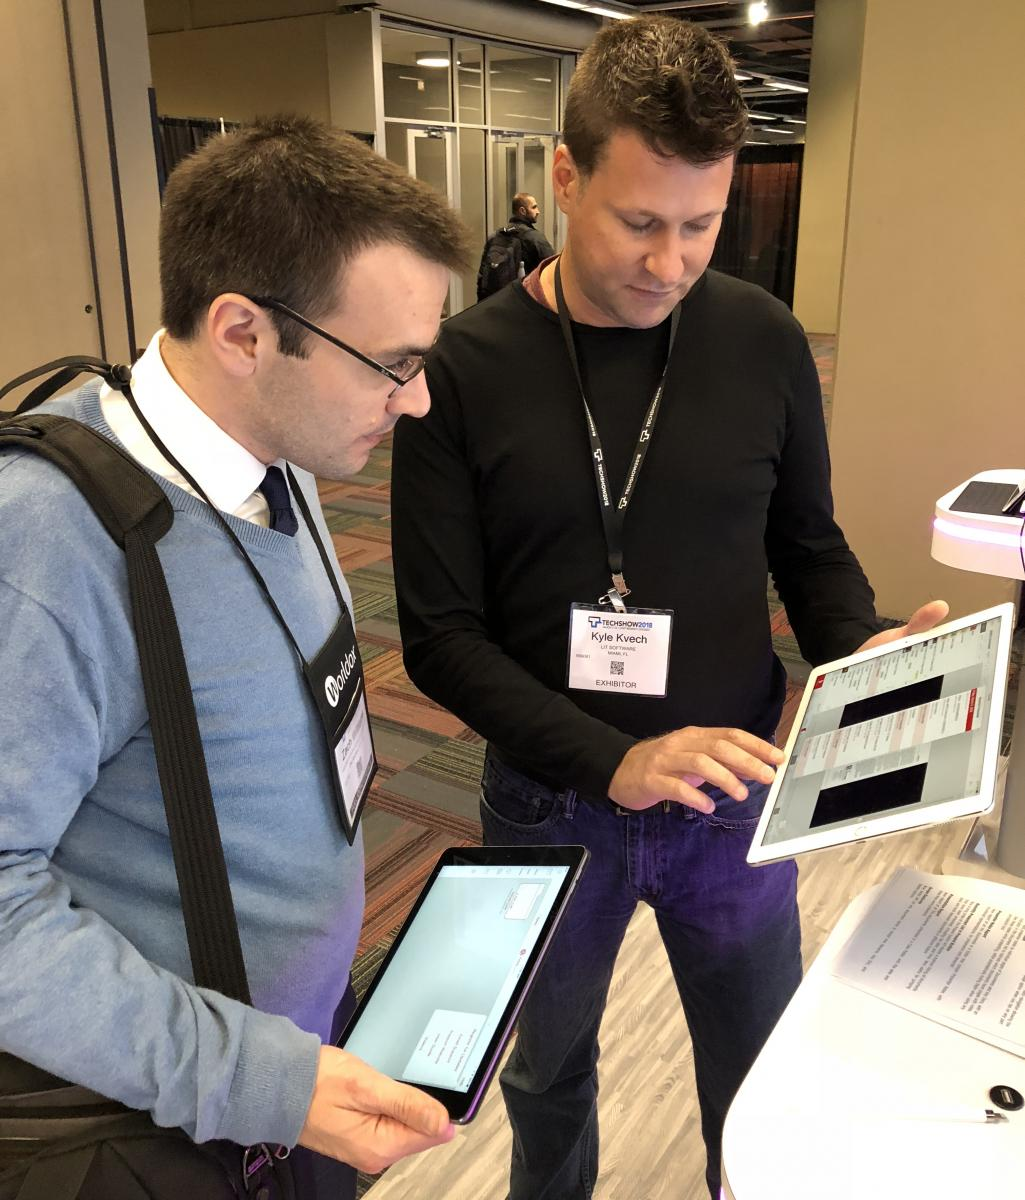 OU Law Student Zach Williams watches a demonstration of TrialPad, a trial presentation app, at ABA TECHSHOW.